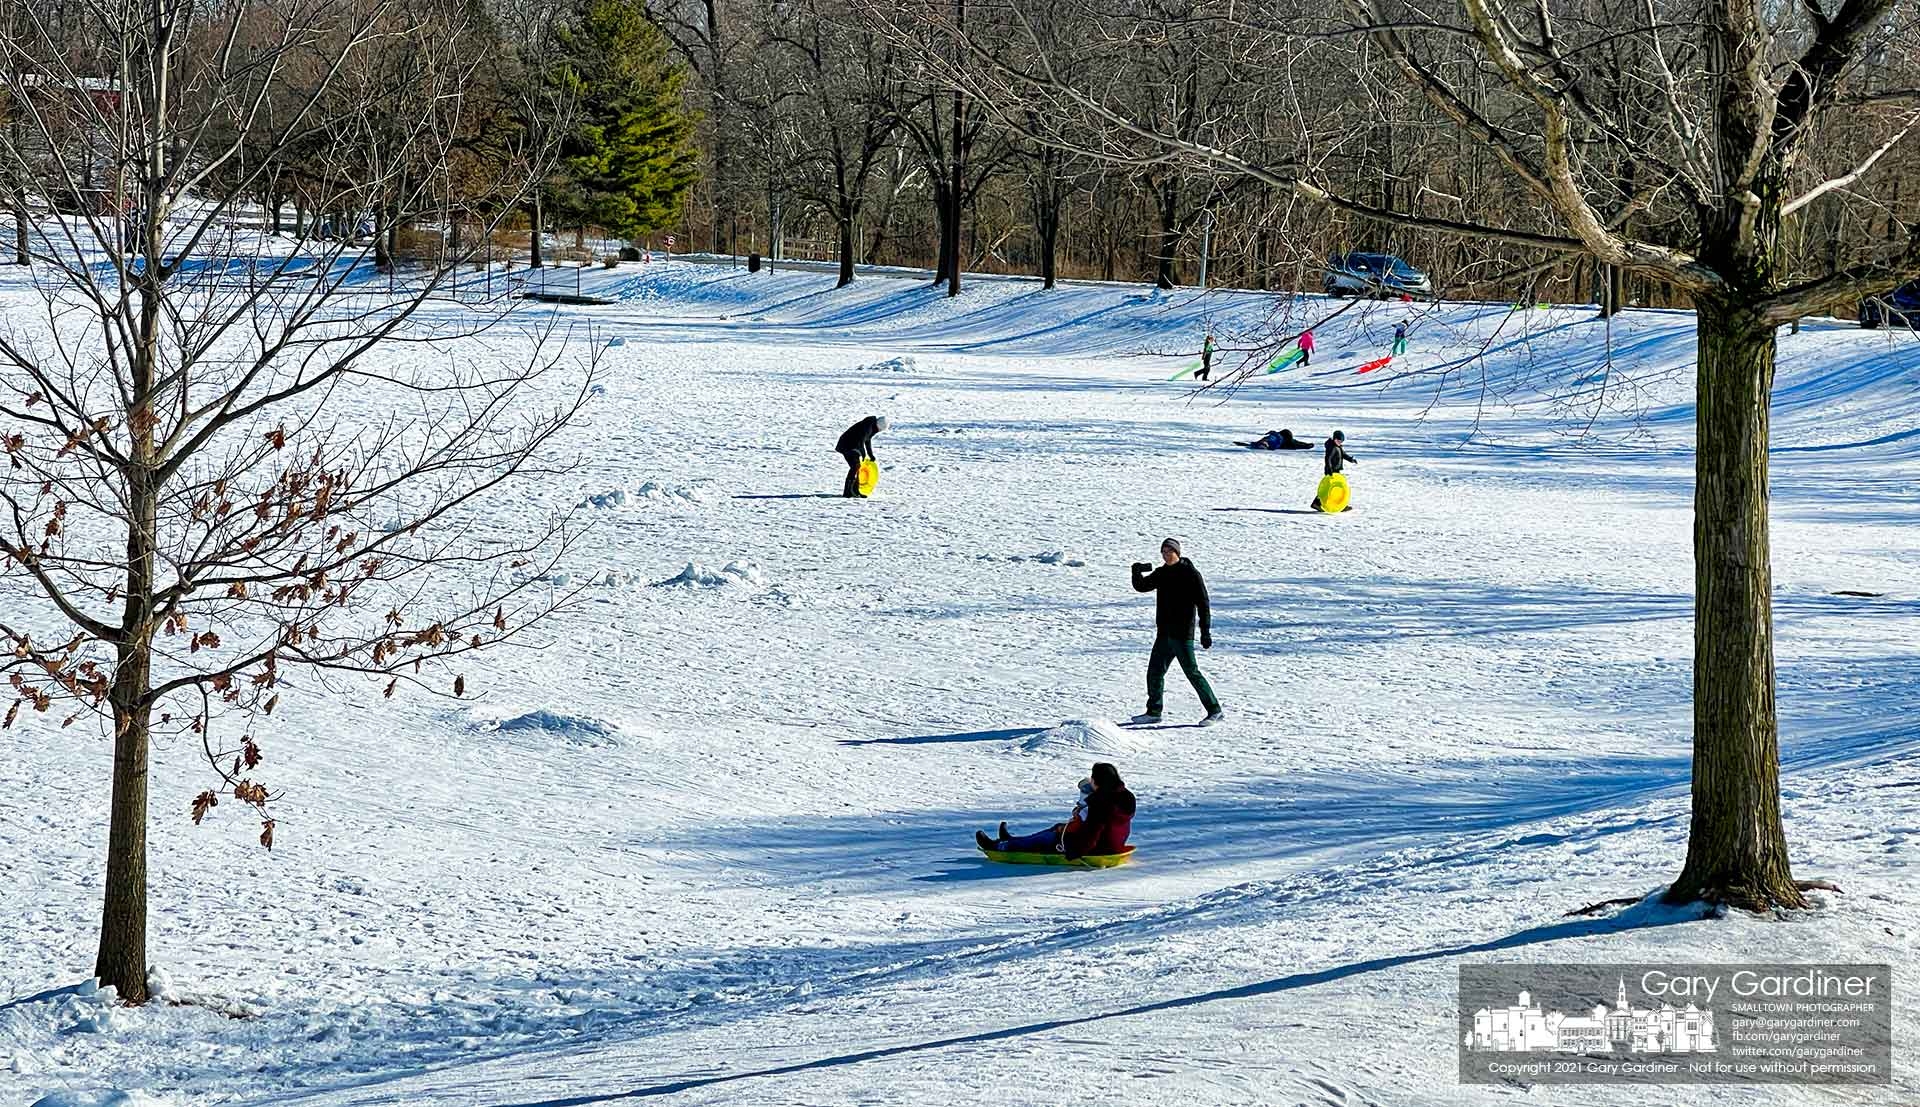 A father runs down the snow-covered incline at Alum Creek Park to make a video of his wife and child riding a sled on the packed snow. My Final Photo for Feb. 6, 2021.